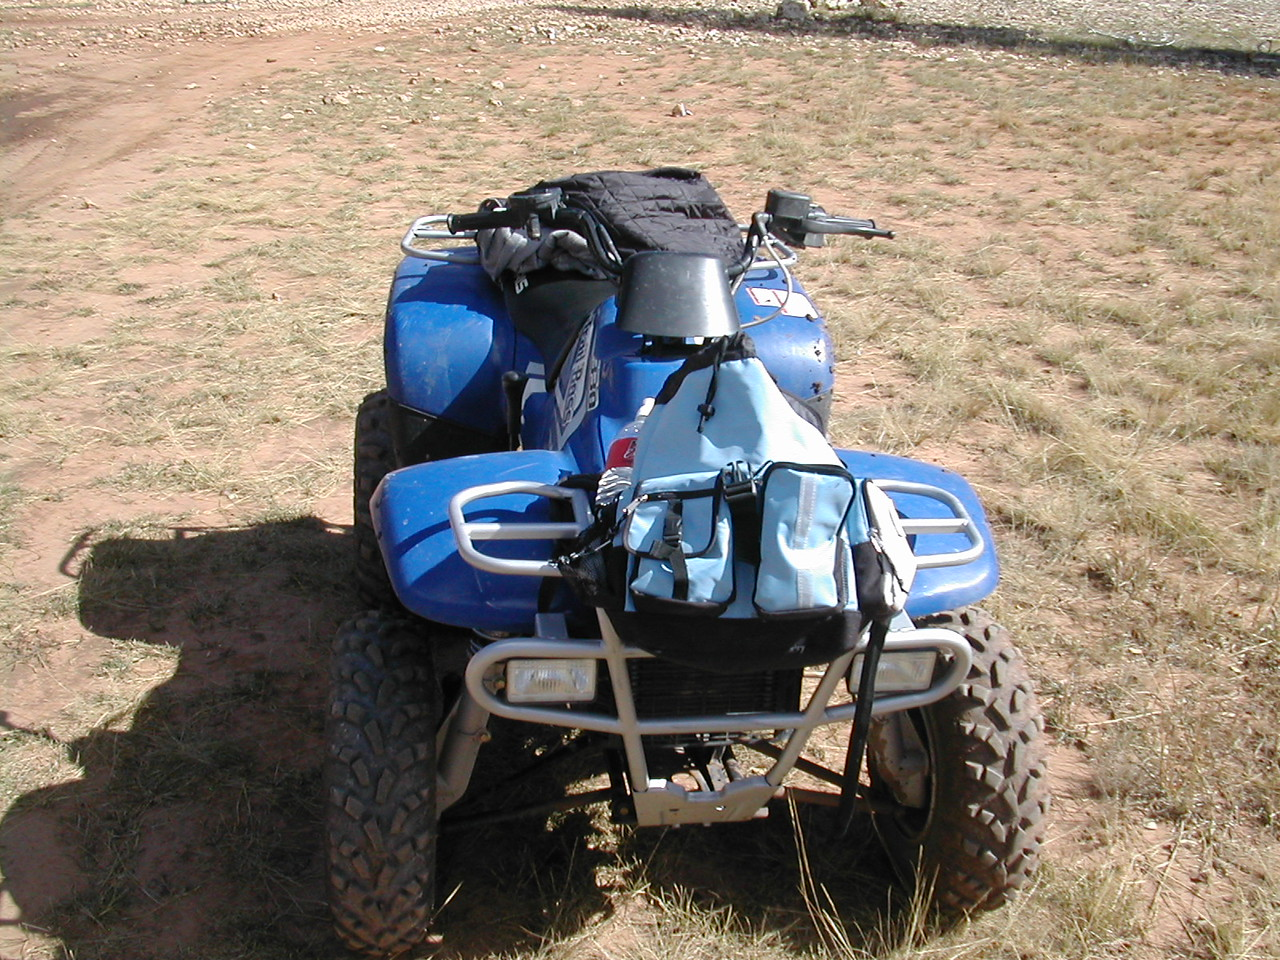 There nice little ATVs. I like the trail rider type. No clutch and really comfortable to ride.<br /> These are the Trailboss 300's. If I  owned them I would opt for the Trailboss 800 or higher.